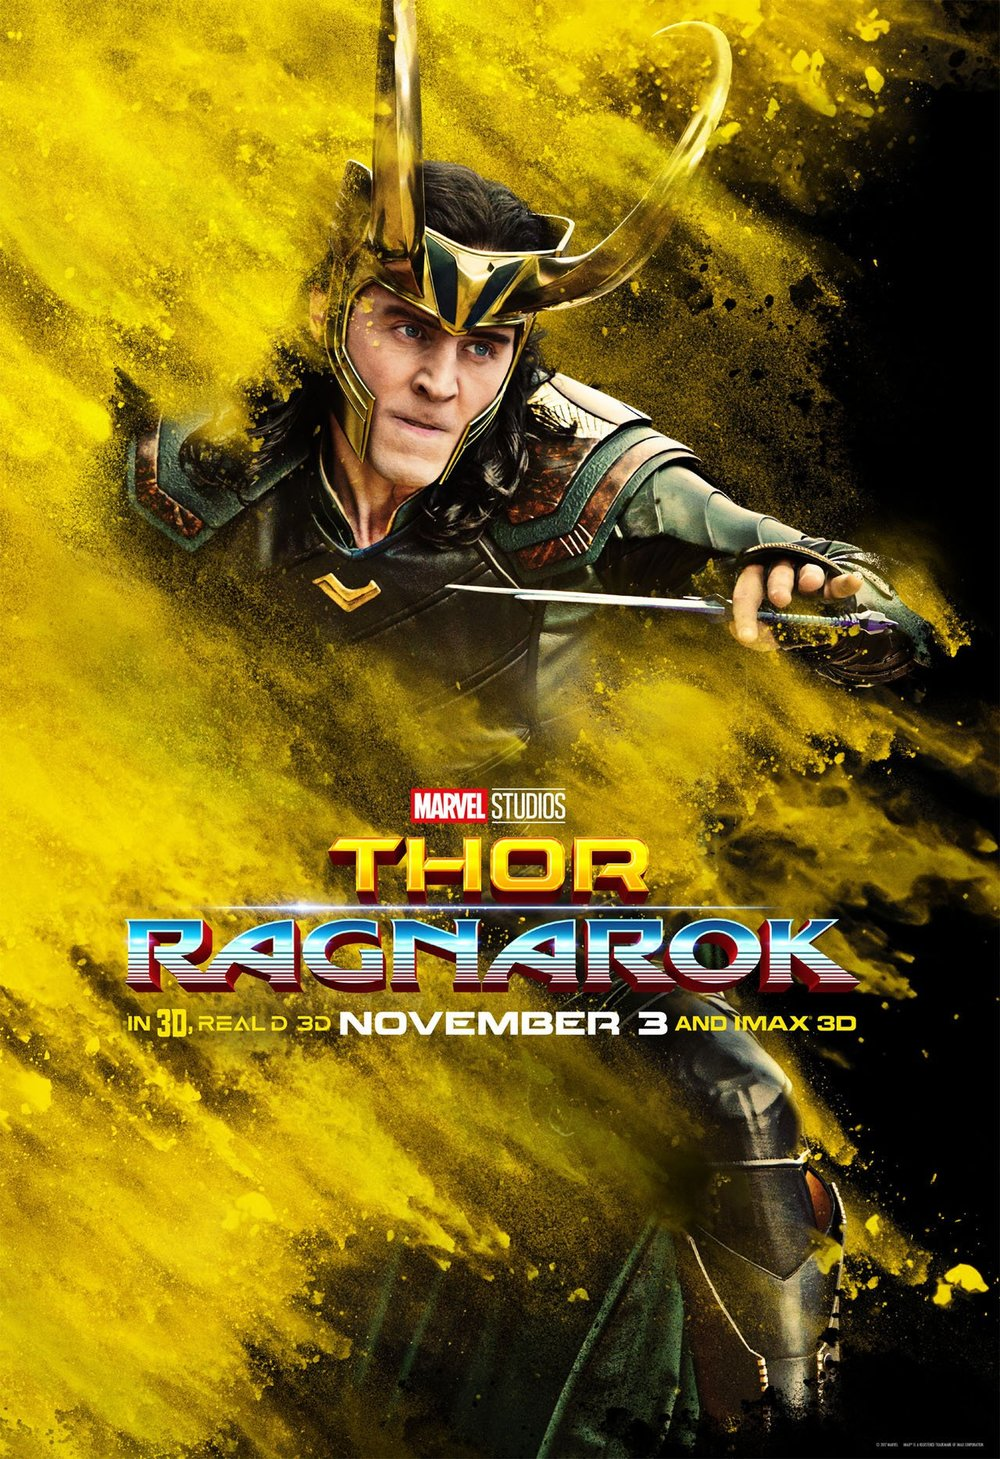 8-wild-thor-ragnarok-character-posters-give-the-heroes-and-villains-an-explosion-of-color1.jpeg